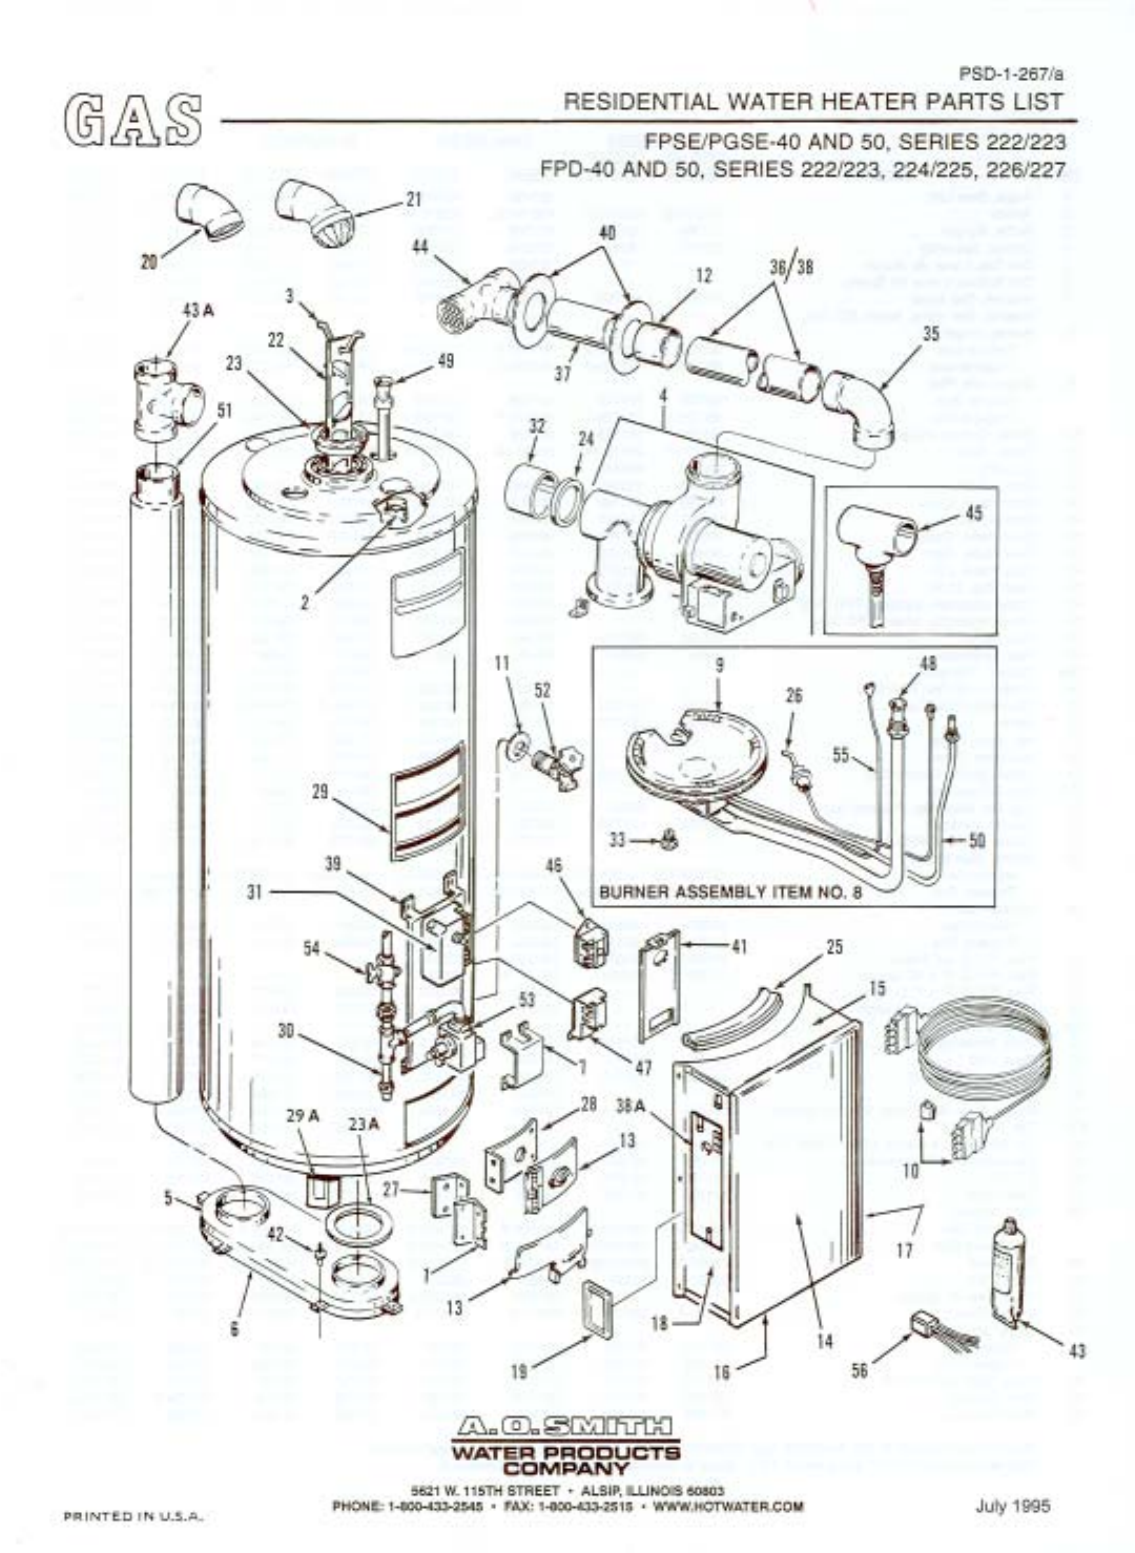 Gould Century Motor Wiring Diagram on Century Pool Pump Motor Wiring Diagrams